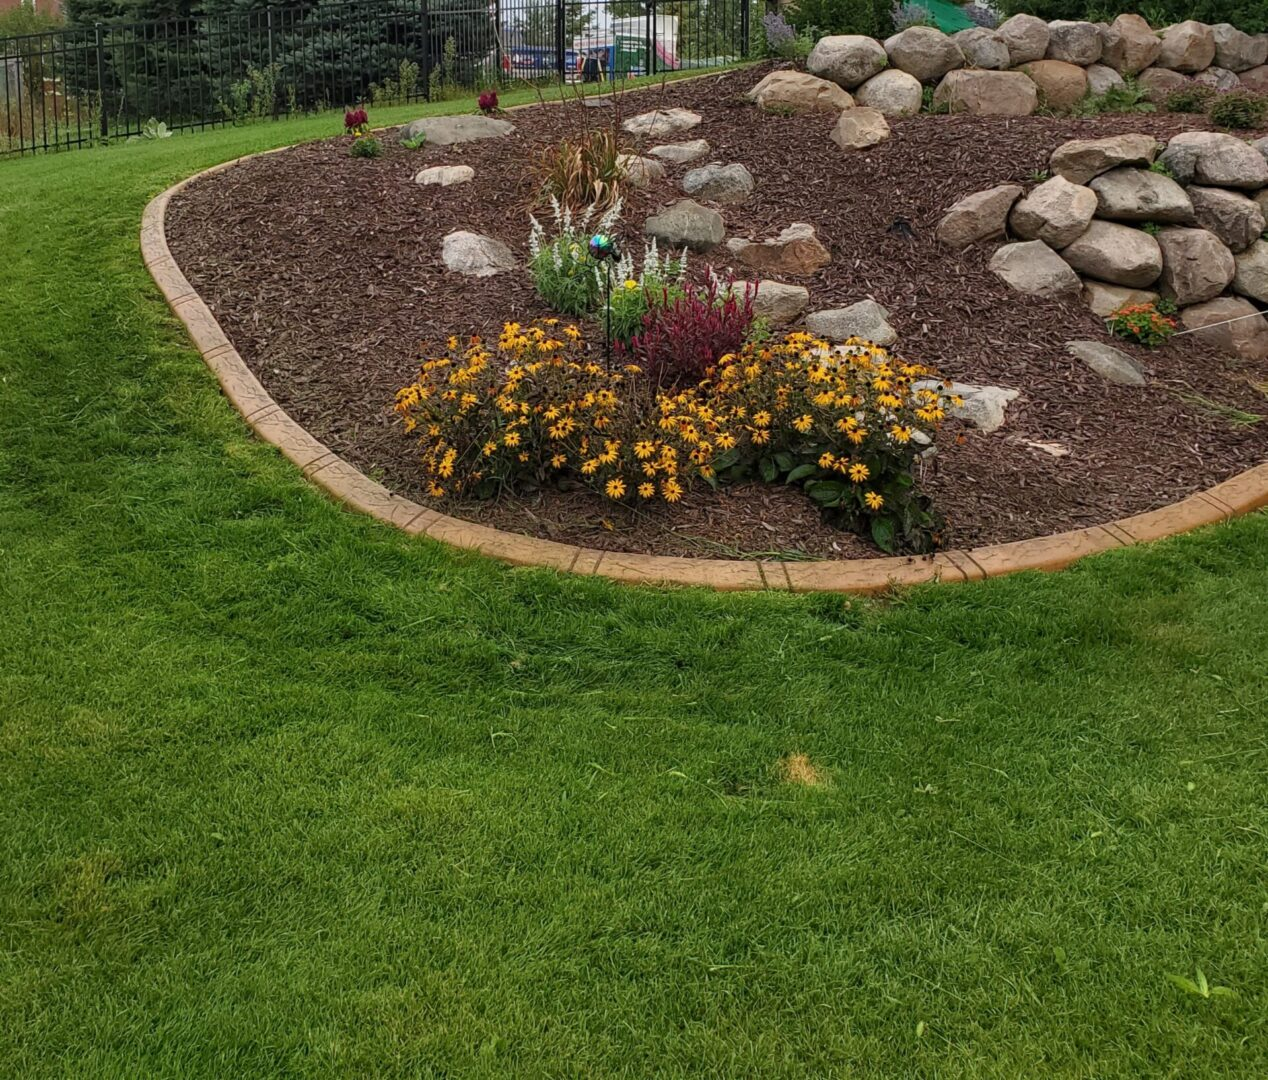 a landscaping project with flowers and stones